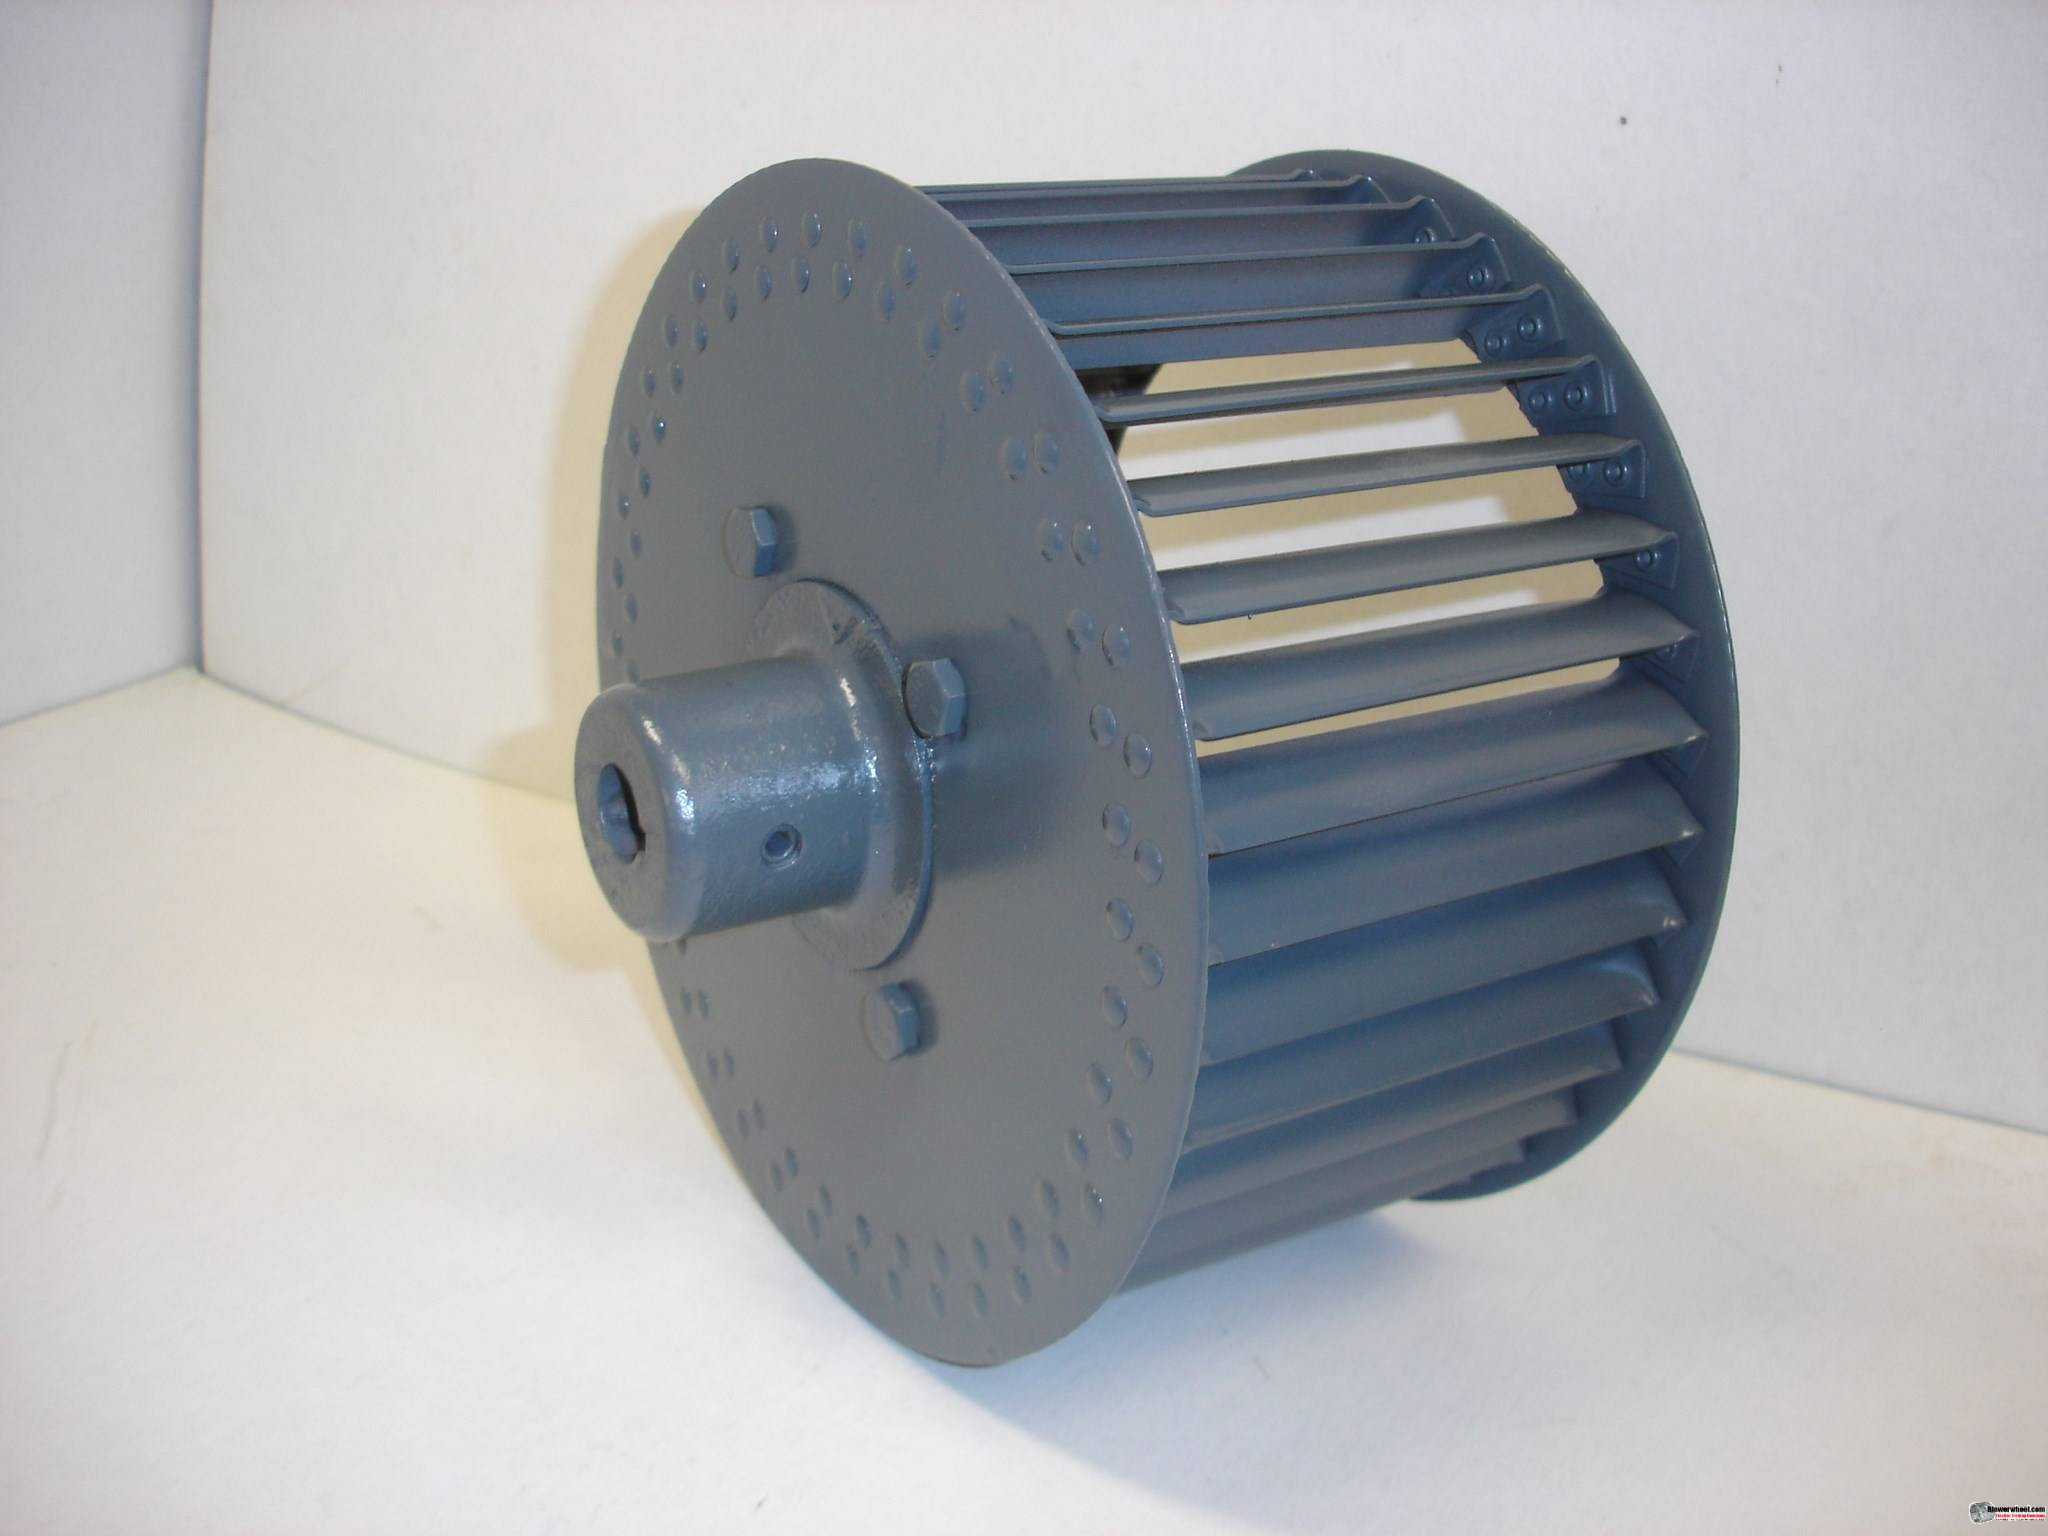 "Single Inlet Steel Blower Wheel 10-13/16"" Diameter 5-1/8"" Width 3/4"" Bore Clockwise rotation with an Outside Hub"